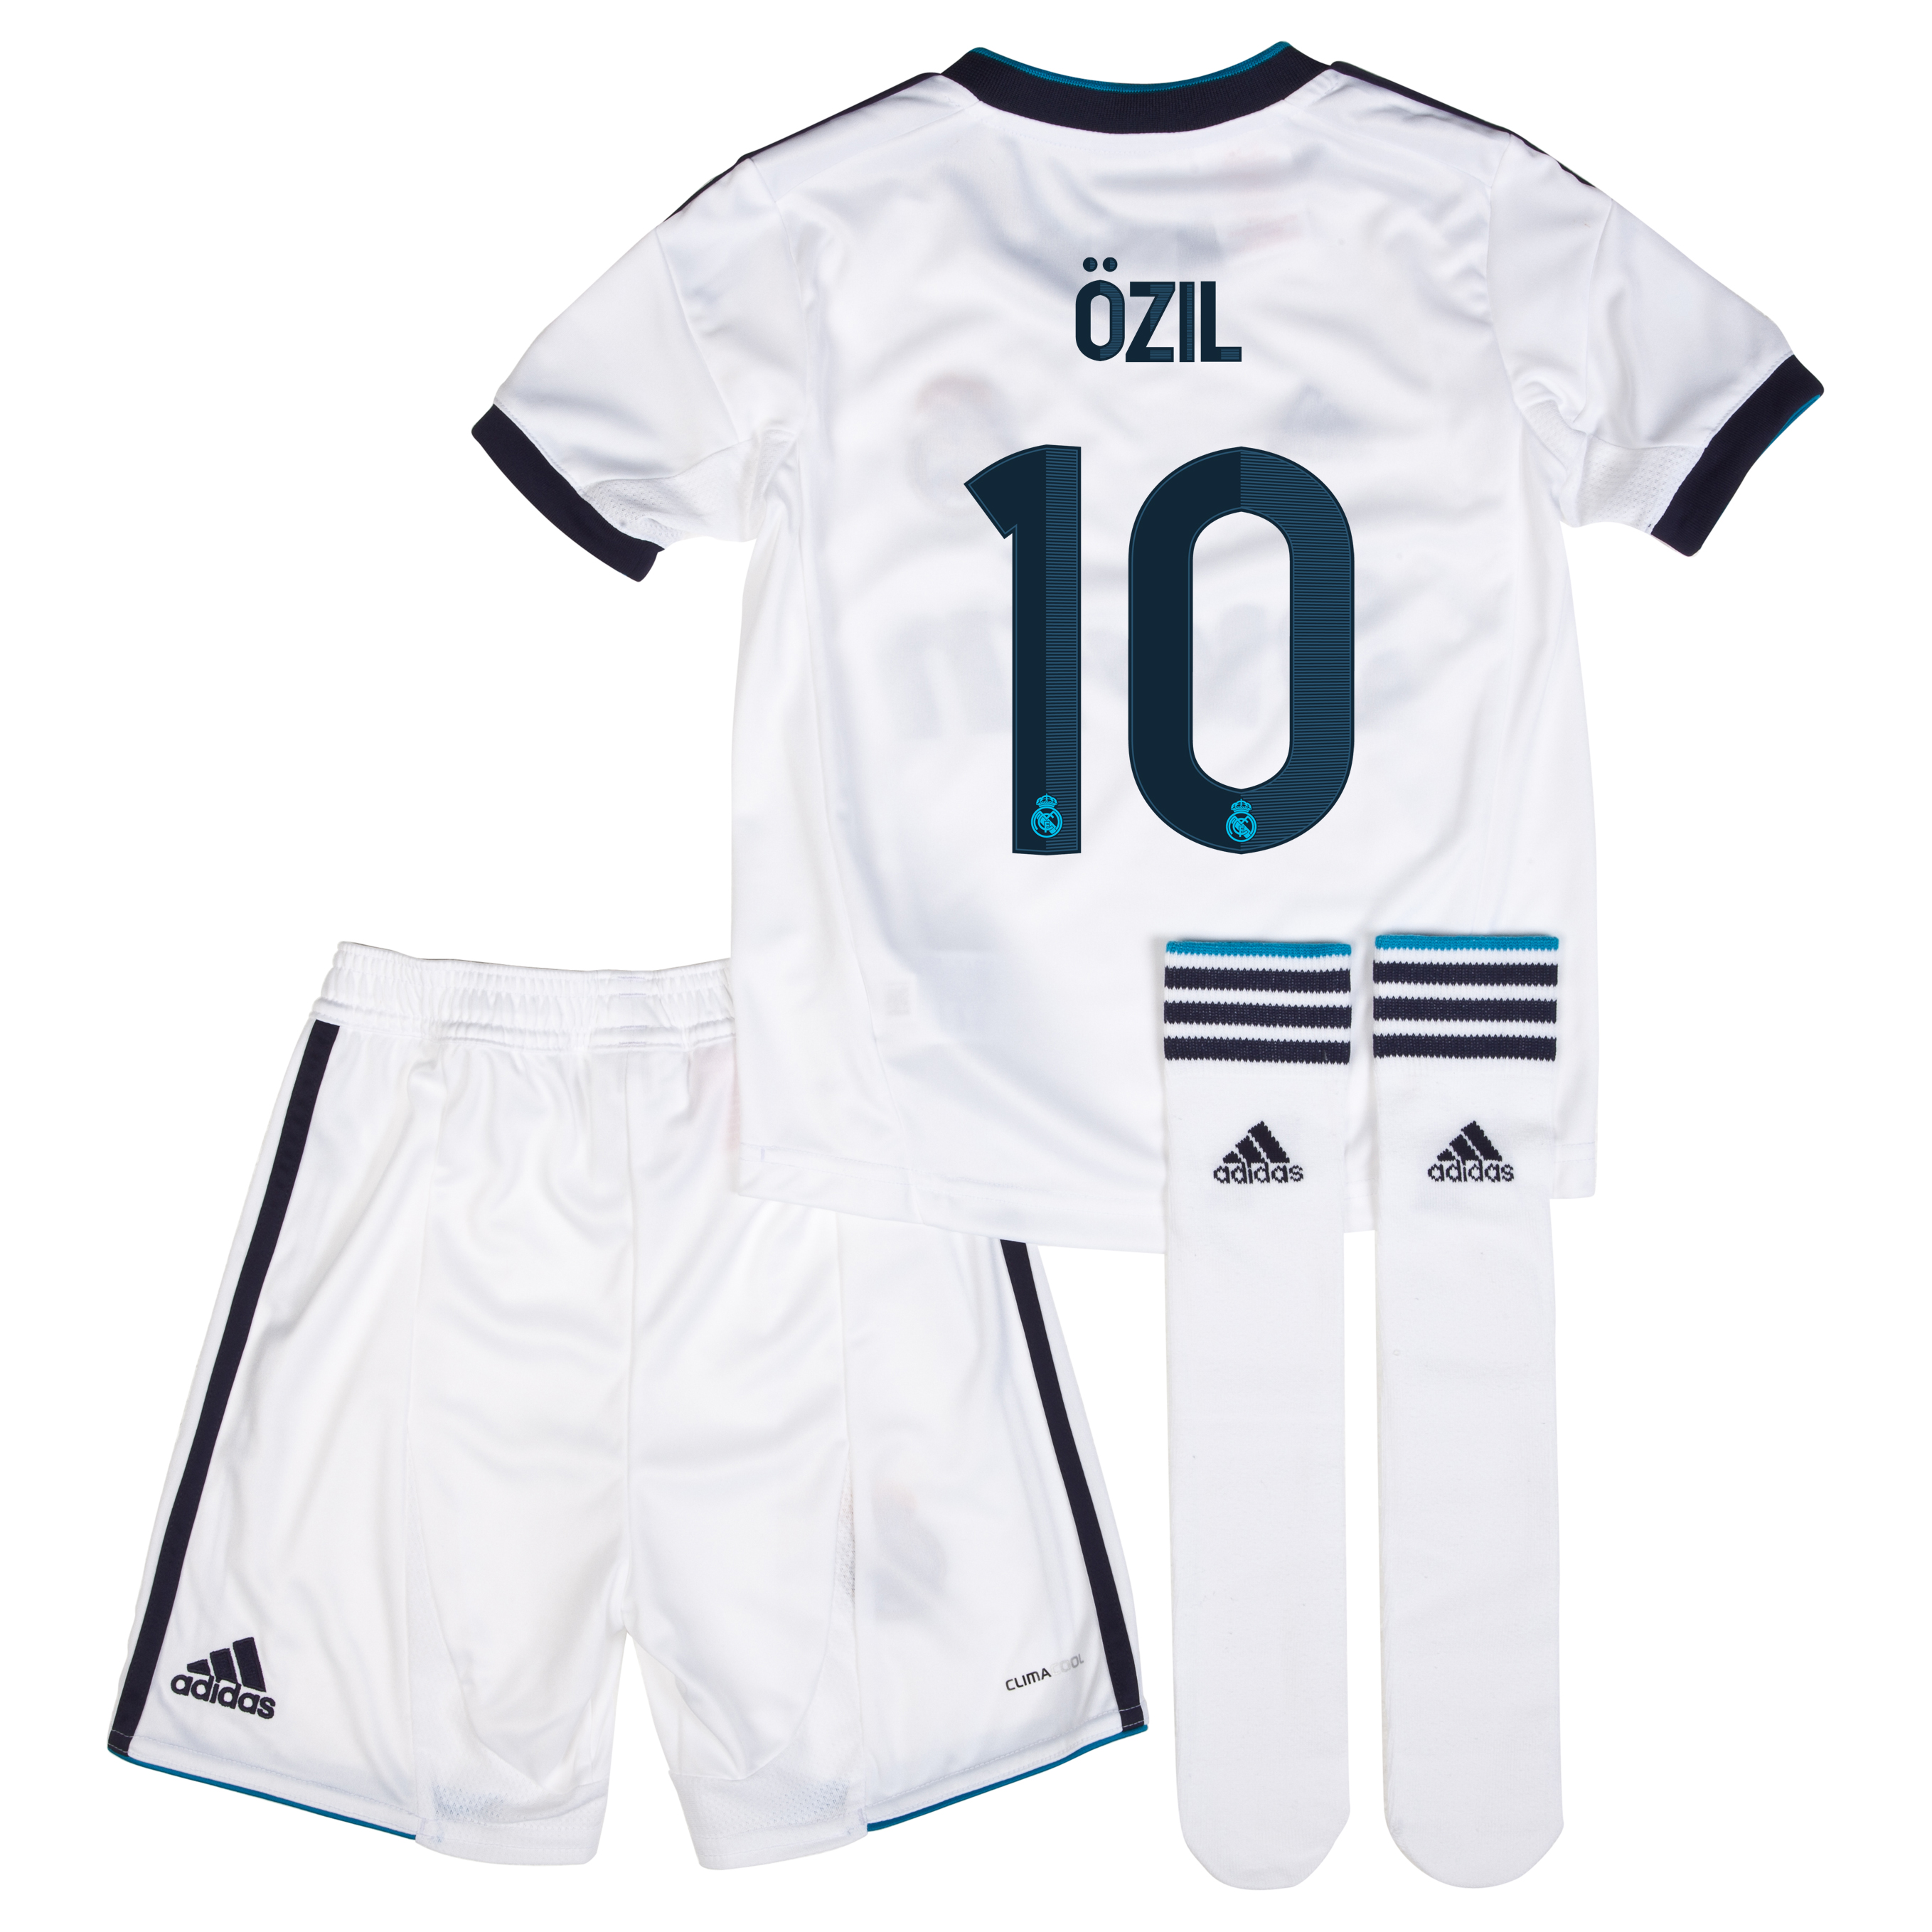 Mini kit local Real Madrid 2012/13 con impresin 10 zil